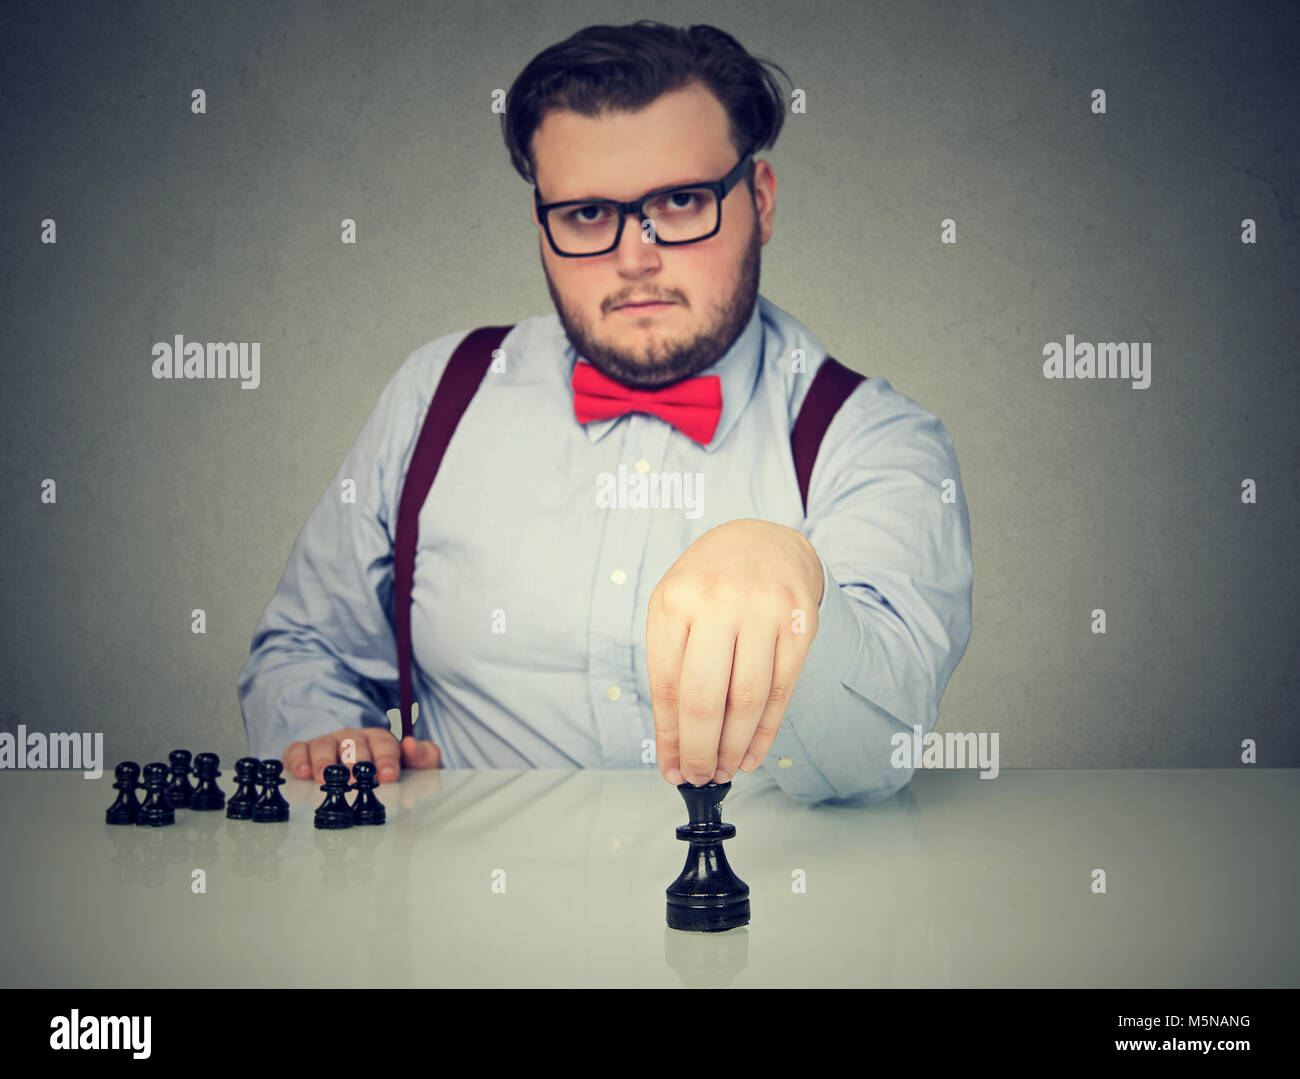 young serious business man playing chess game - Stock Image